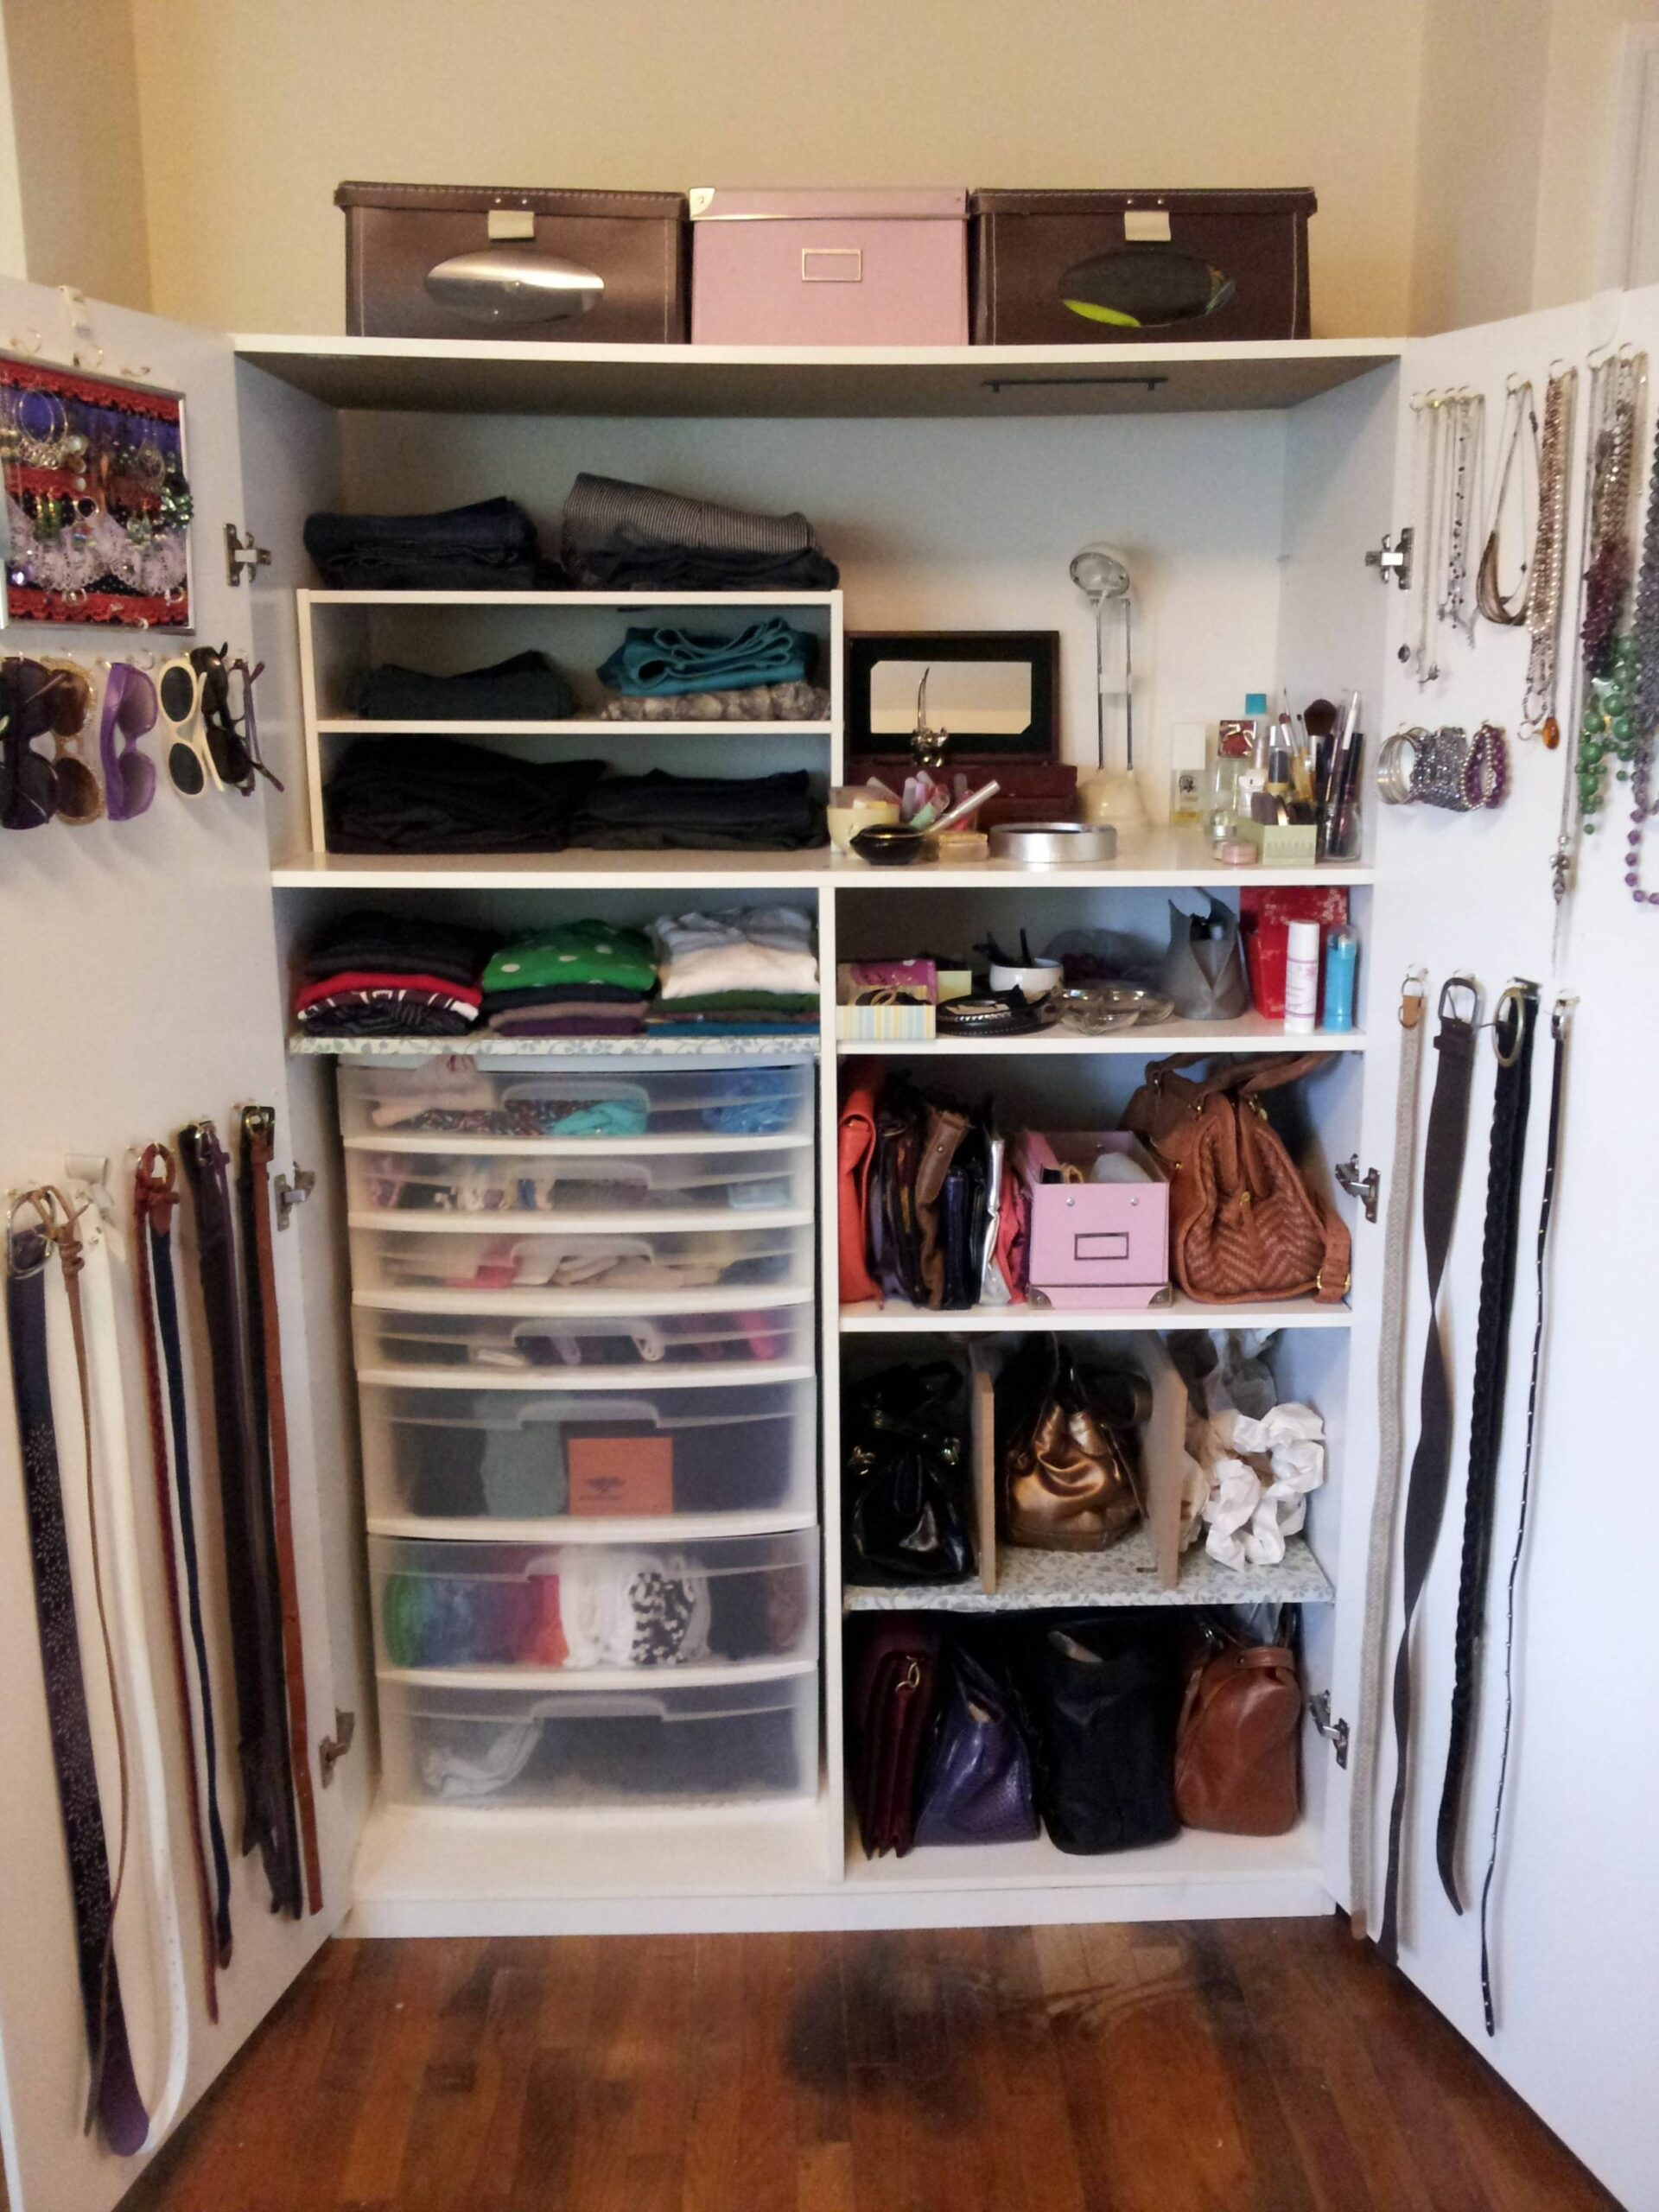 How to Organize A Lot of Clothing in Very Little Closet Space - closet arrangement ideas